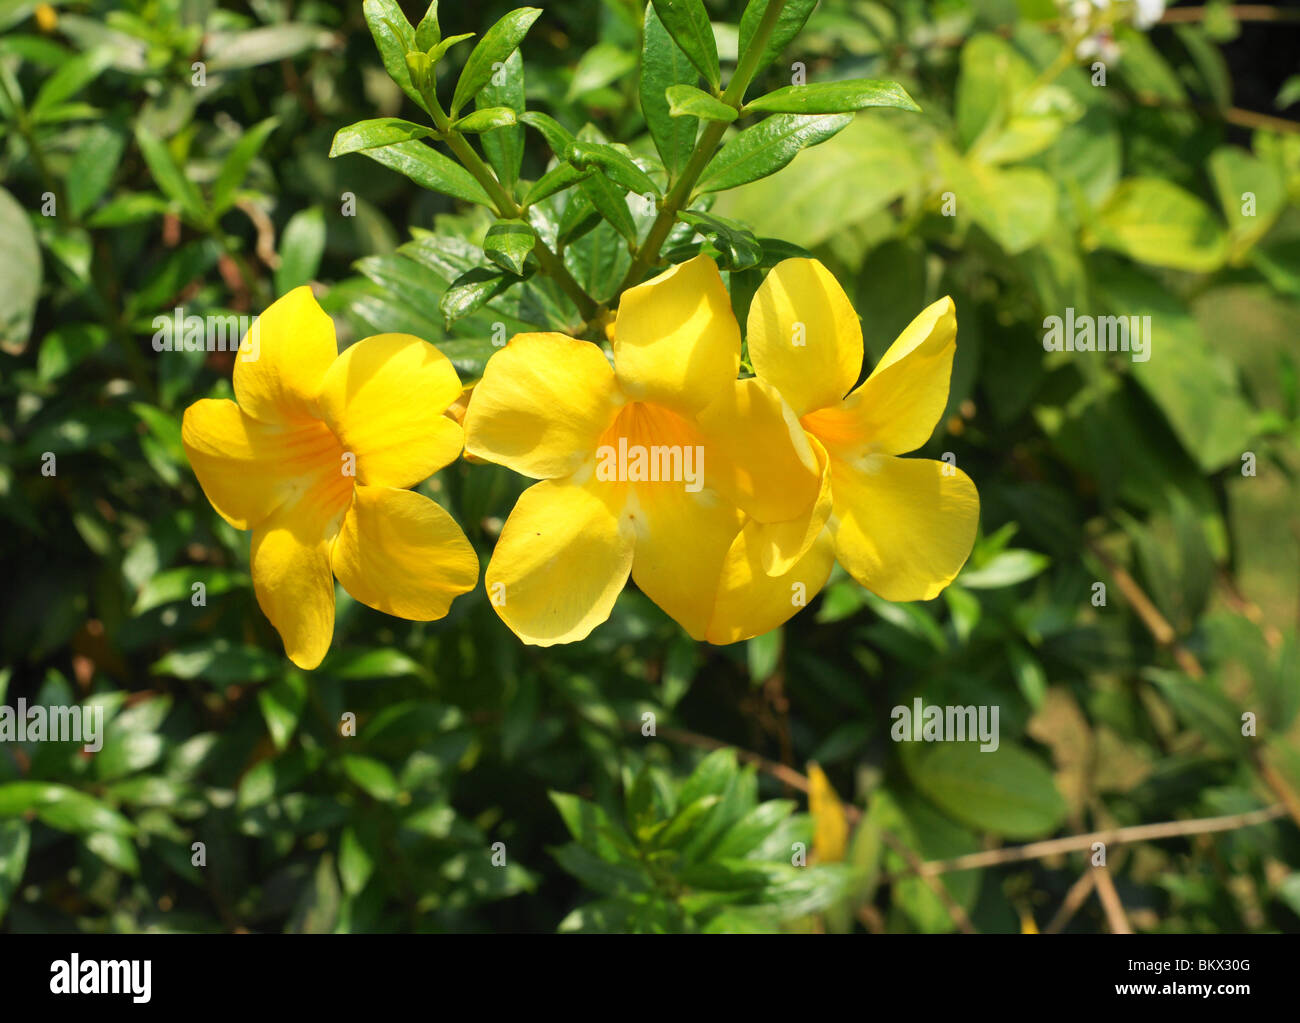 Flower India Stock Photos Flower India Stock Images Alamy